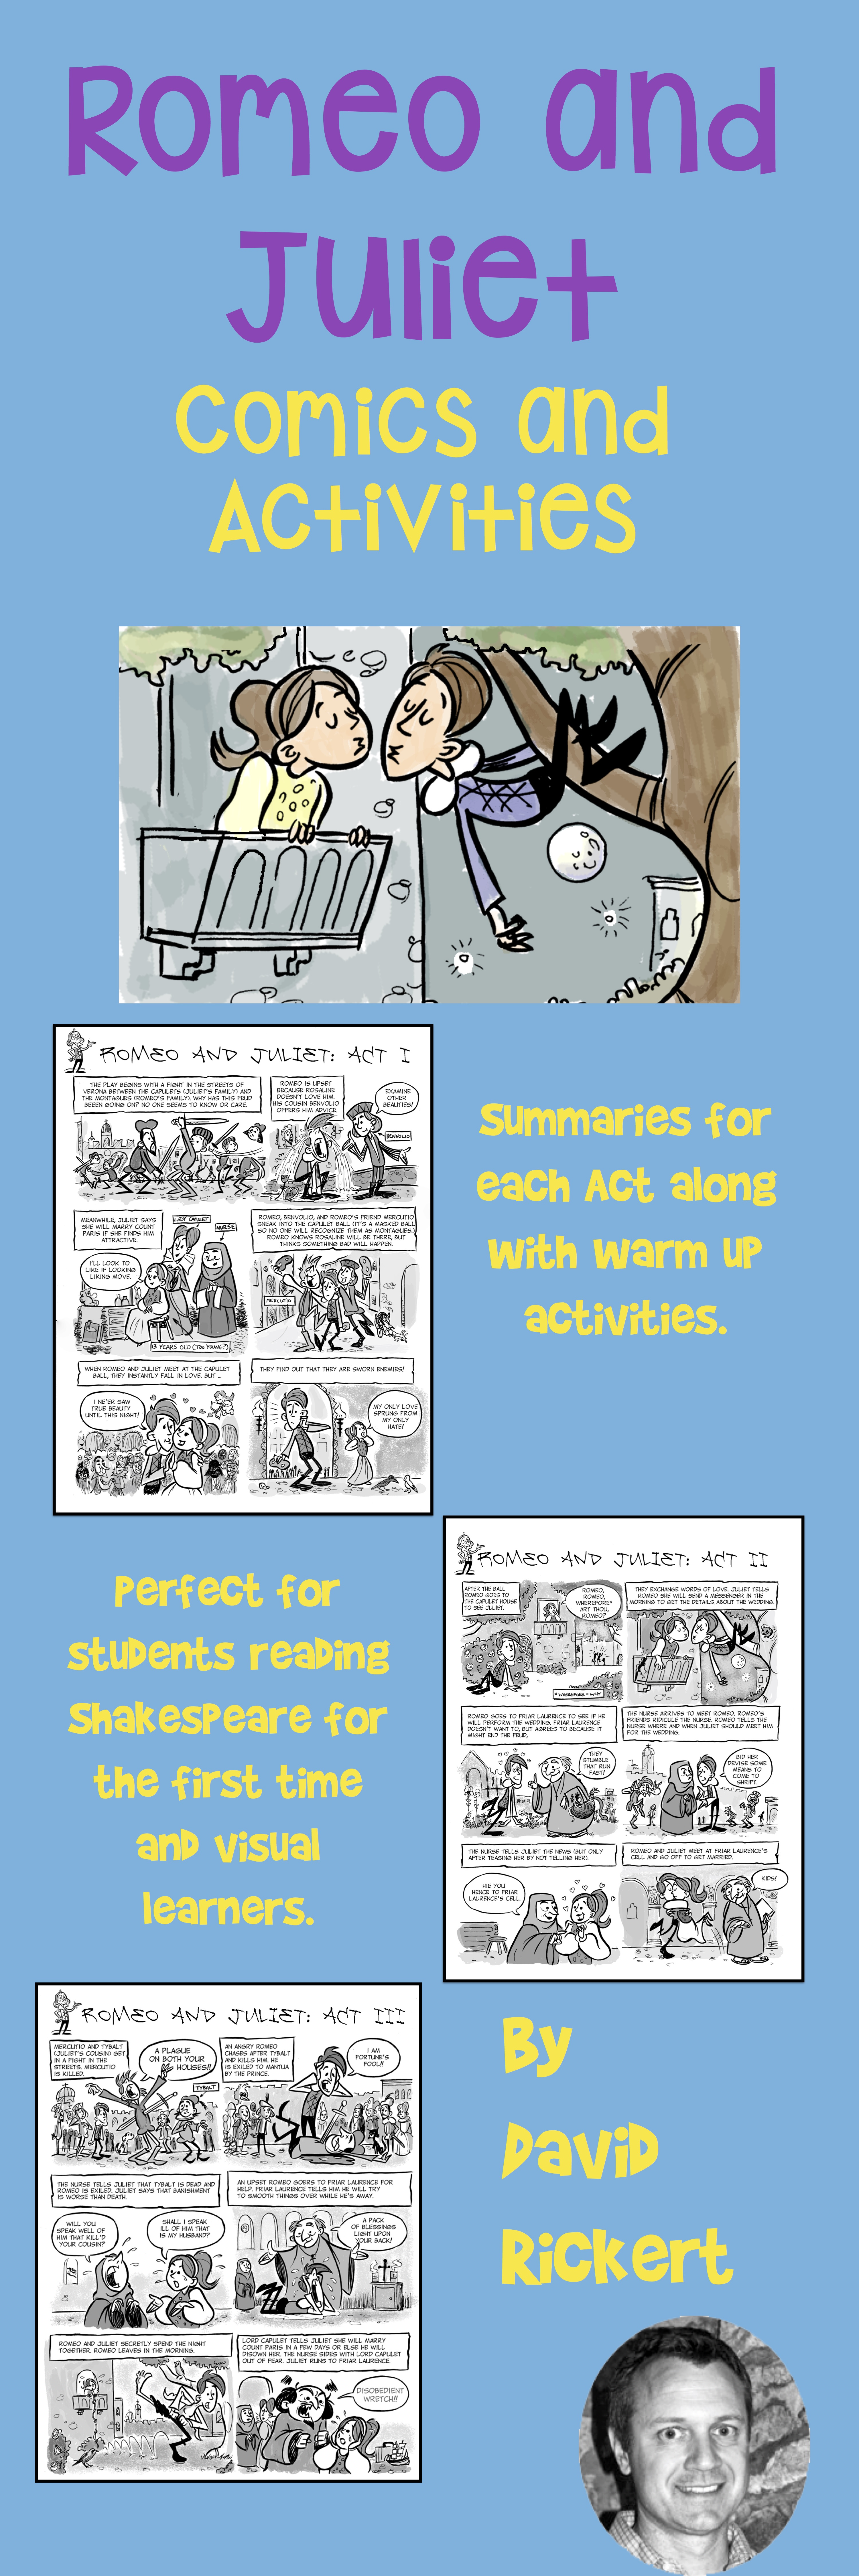 Romeo And Juliet Shakespeare Comics And Activities